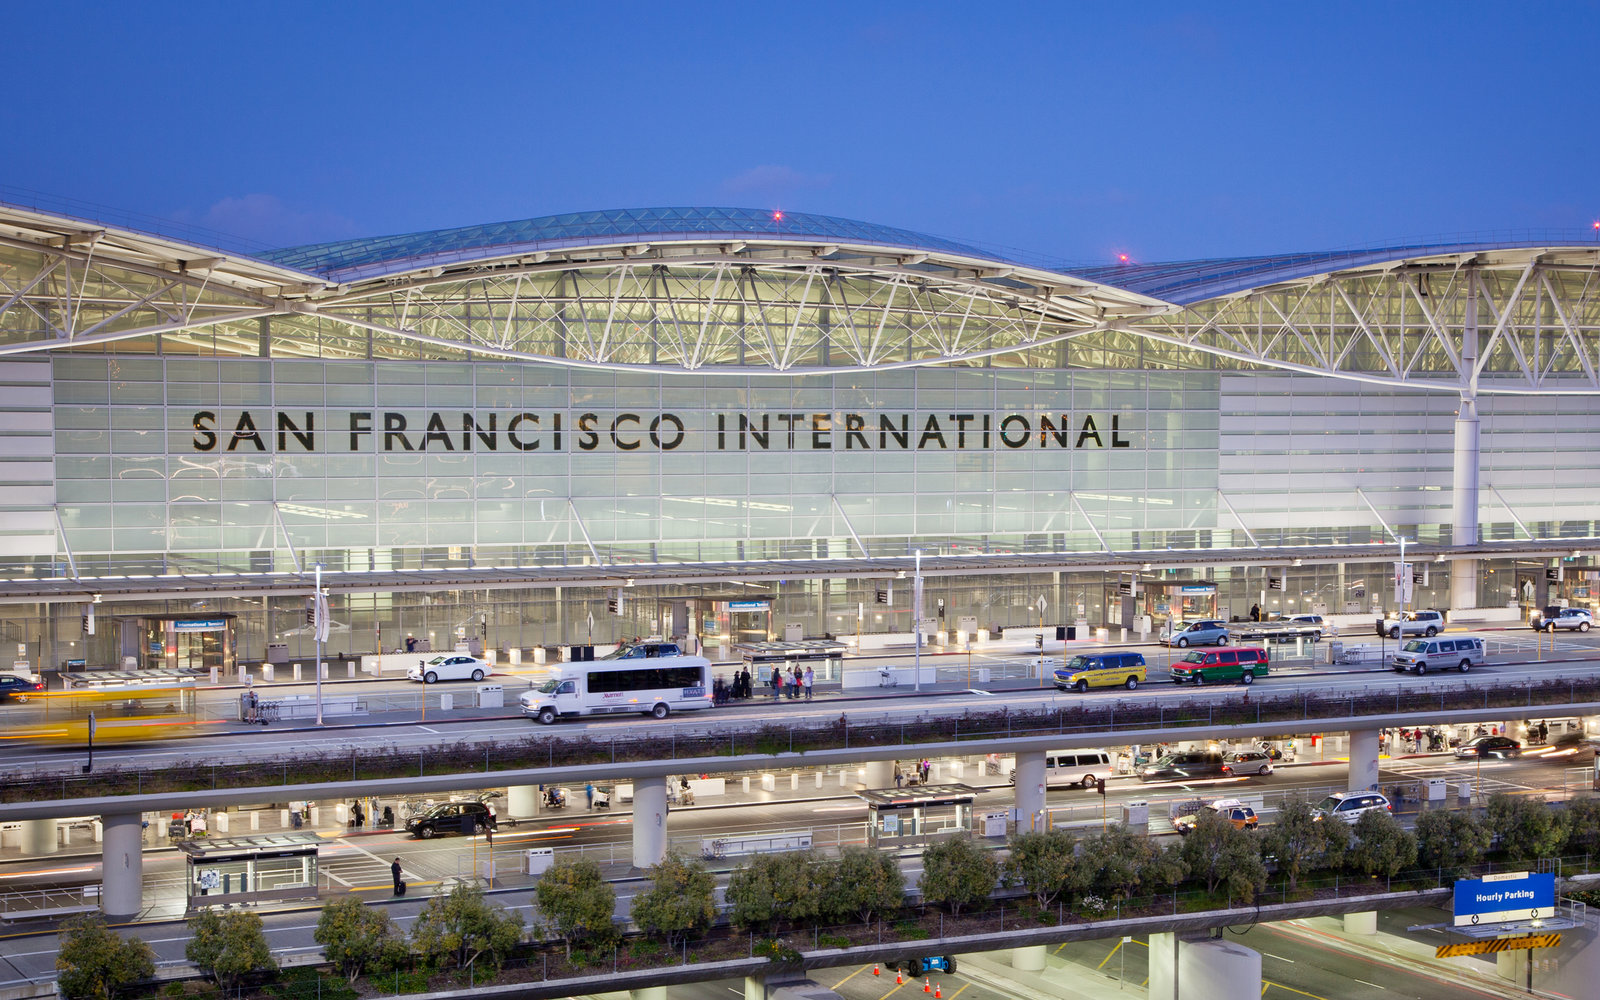 Fear of Flying clinics are held at San Francisco International Airport